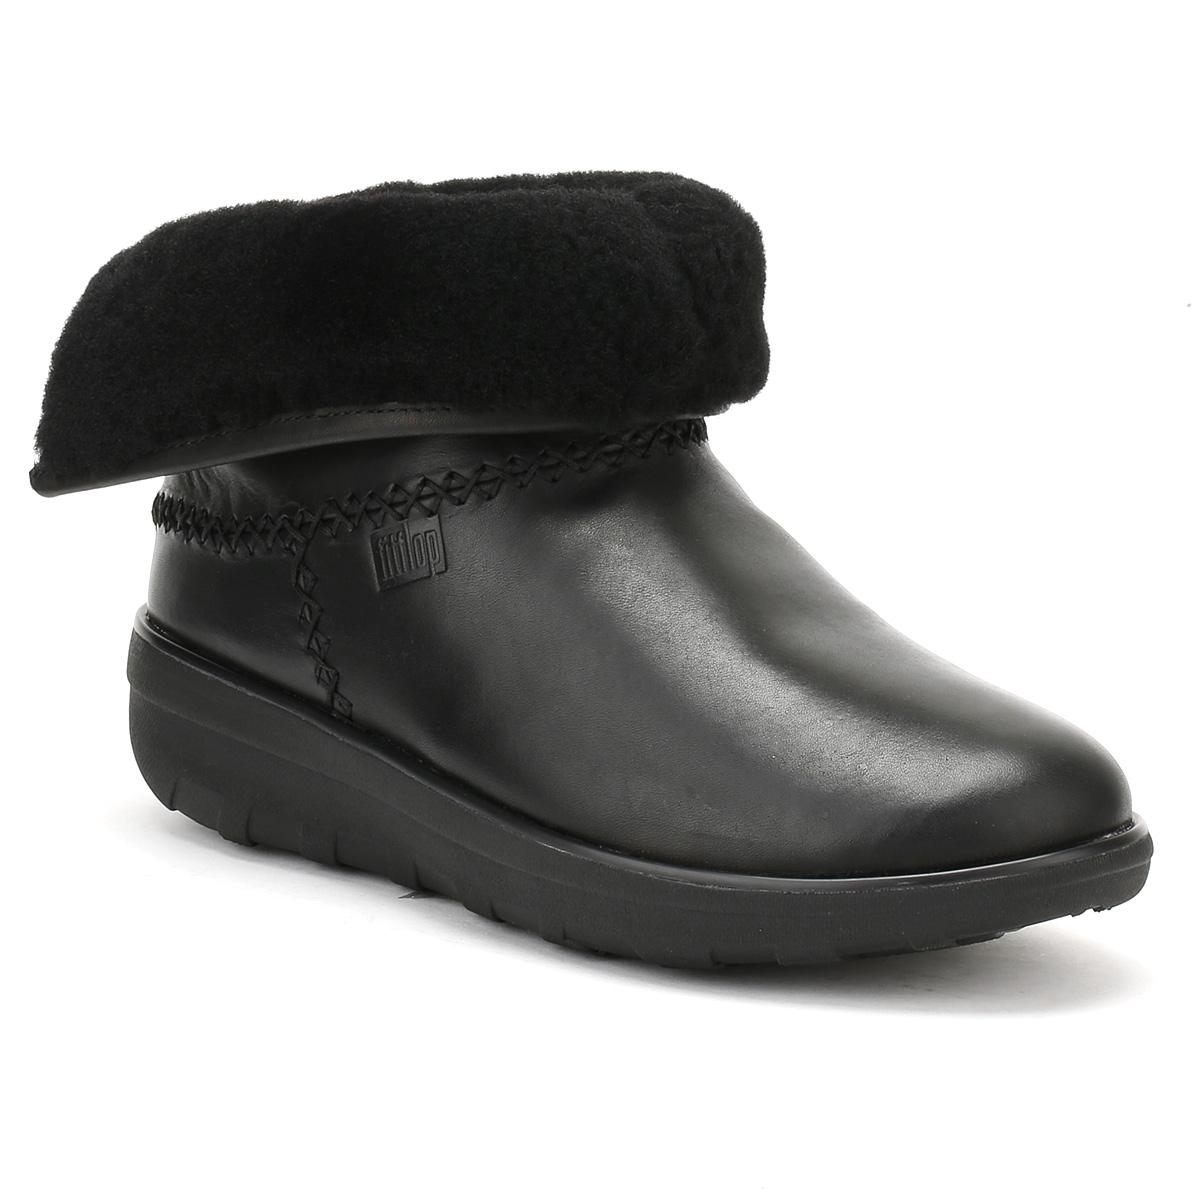 dcd8c3cff9bb7b Fitflop Womens Black Leather Mukluk Shorty Ii Boots in Black - Lyst